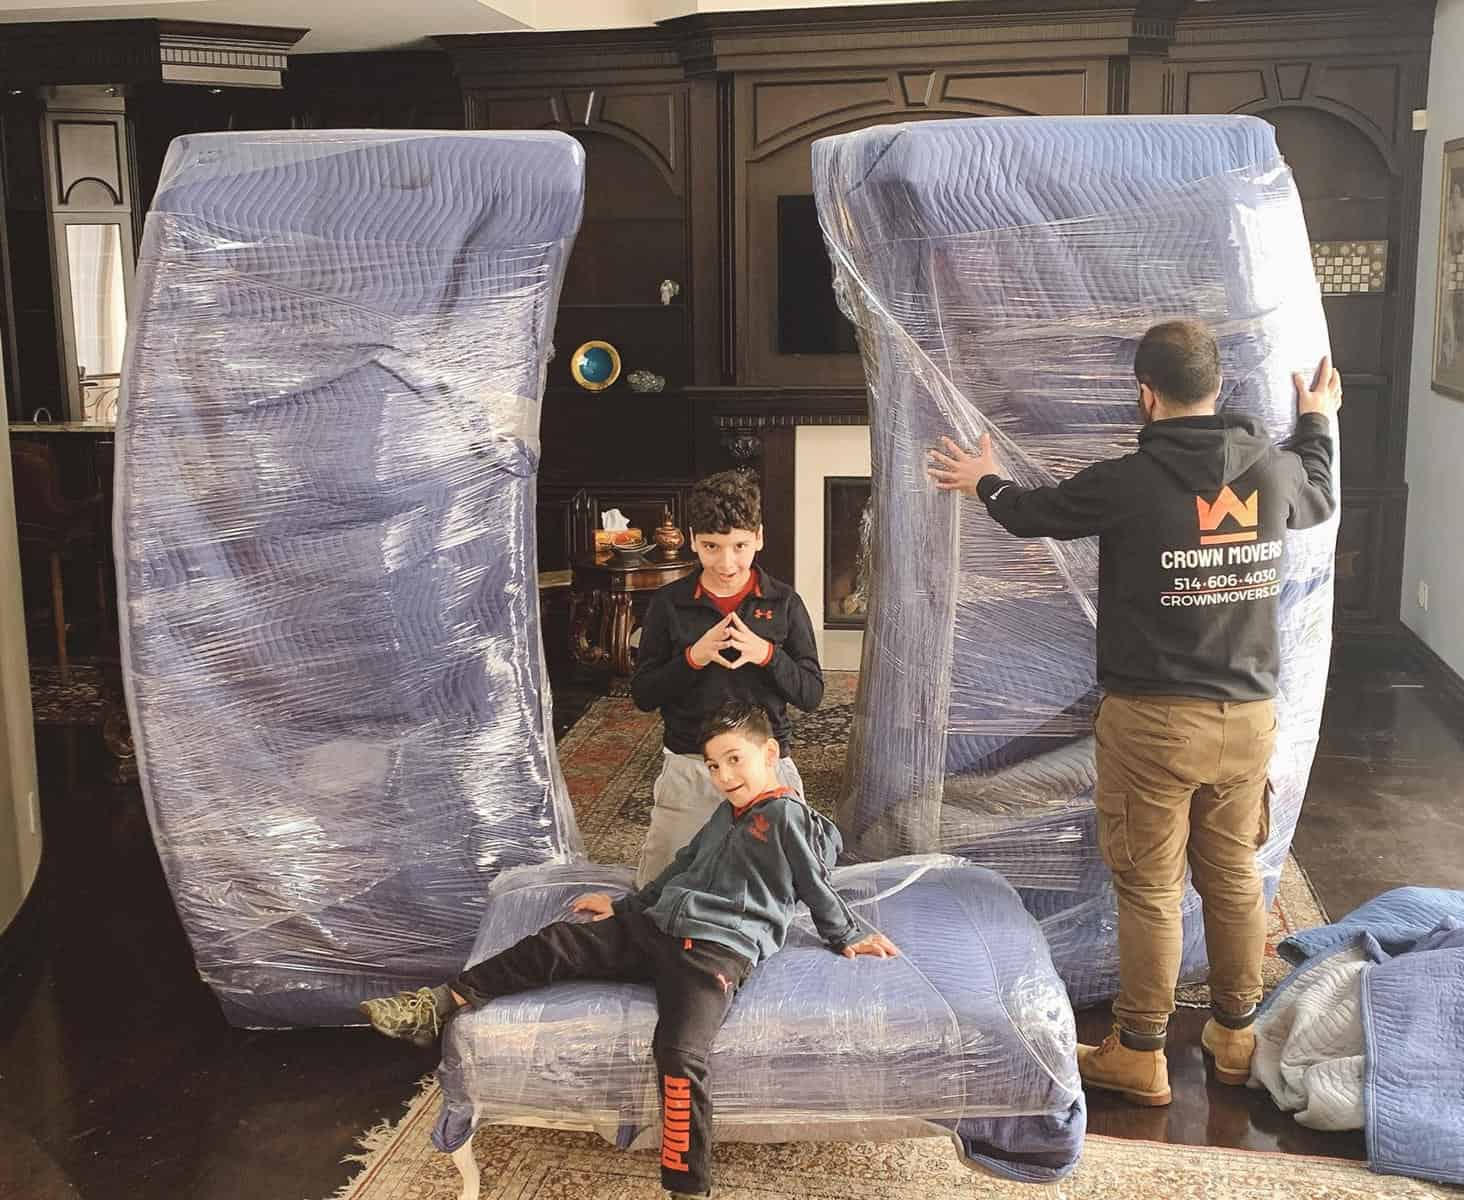 friendly movers in Montreal offering packing services